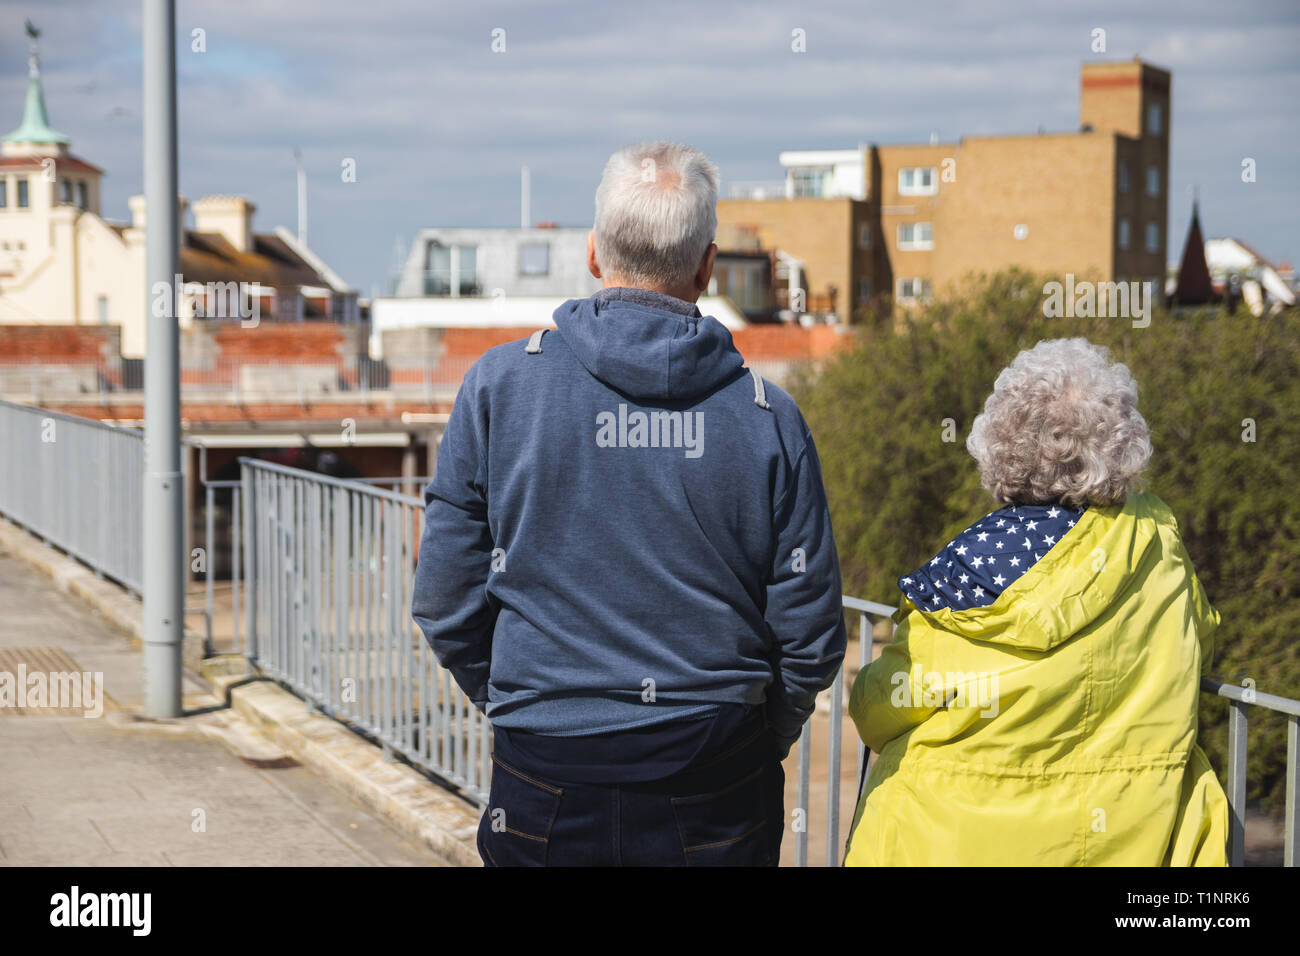 Elderly couple walking together on a promenade looking at the view - Stock Image